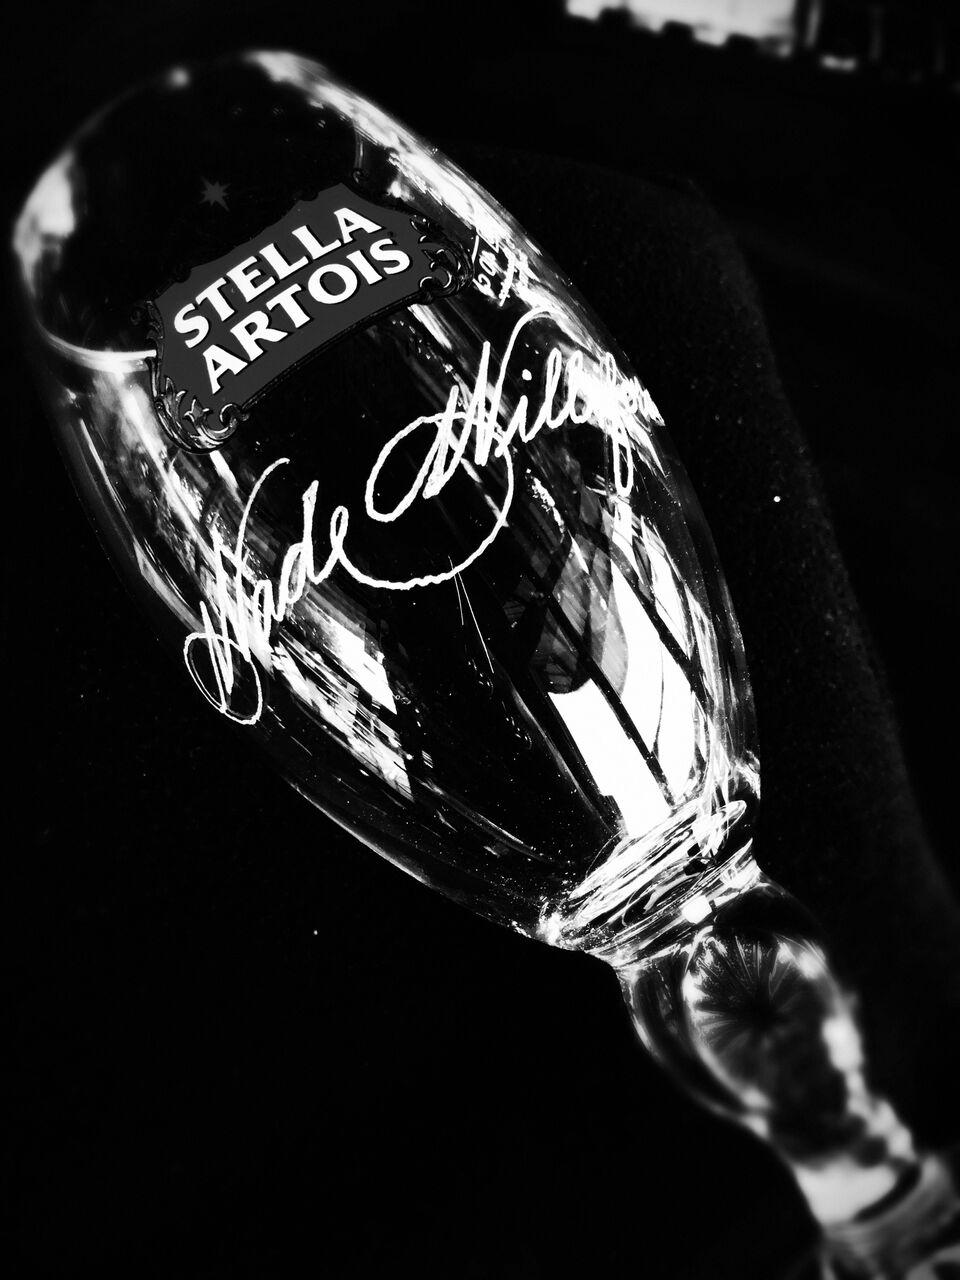 houston engraver engraving stella artois beer wine chalice glass.jpg